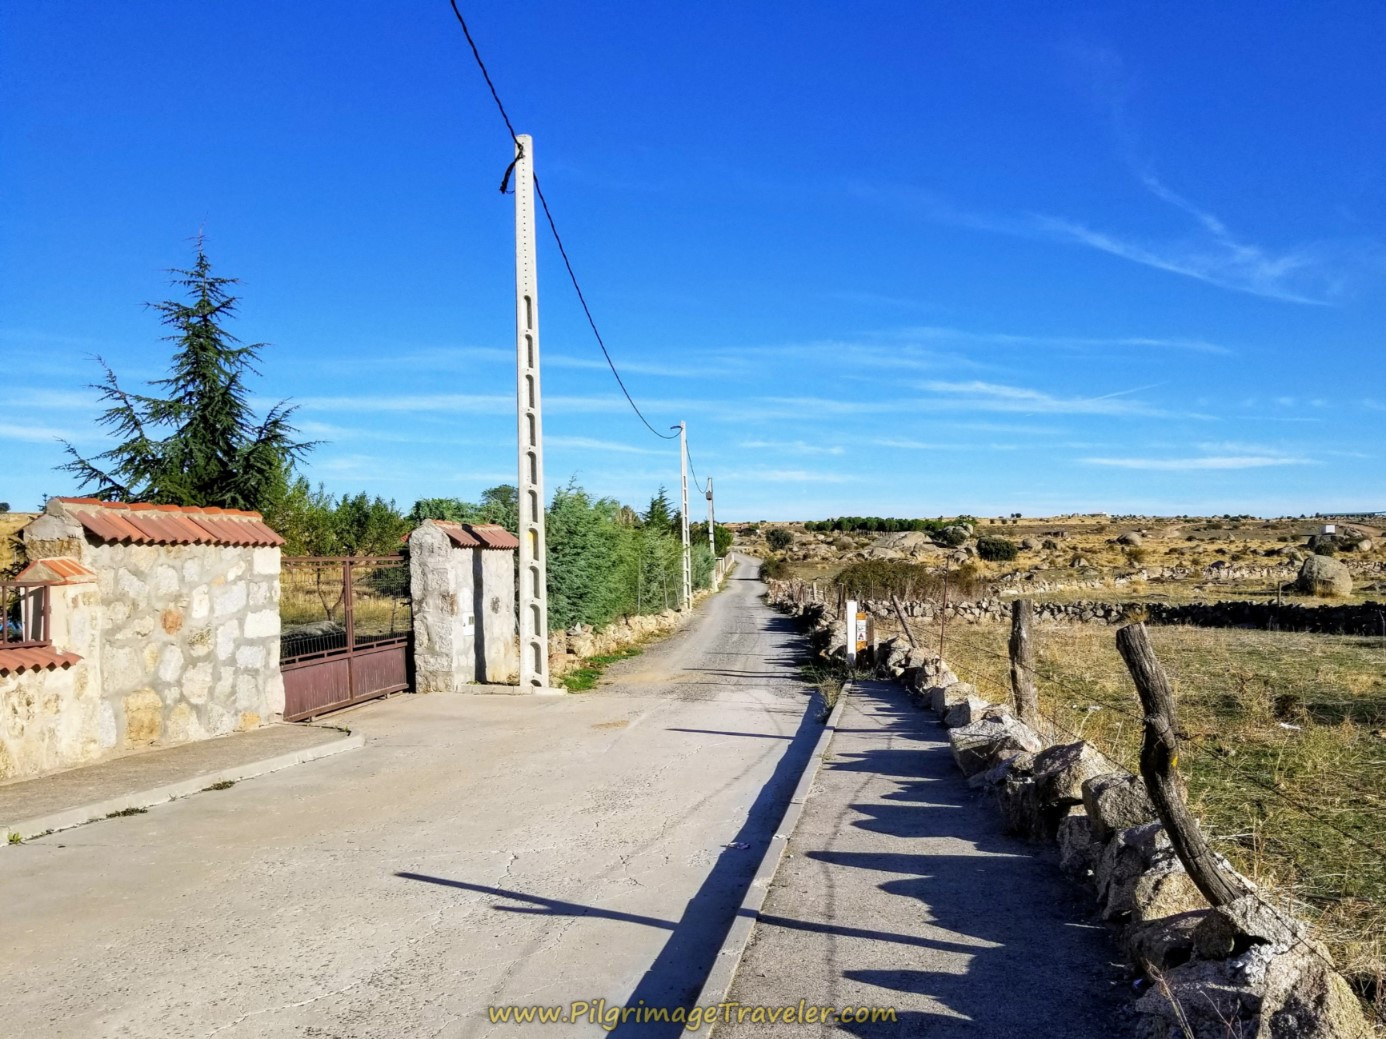 The Road Leaving Narrillos de San Leonardo